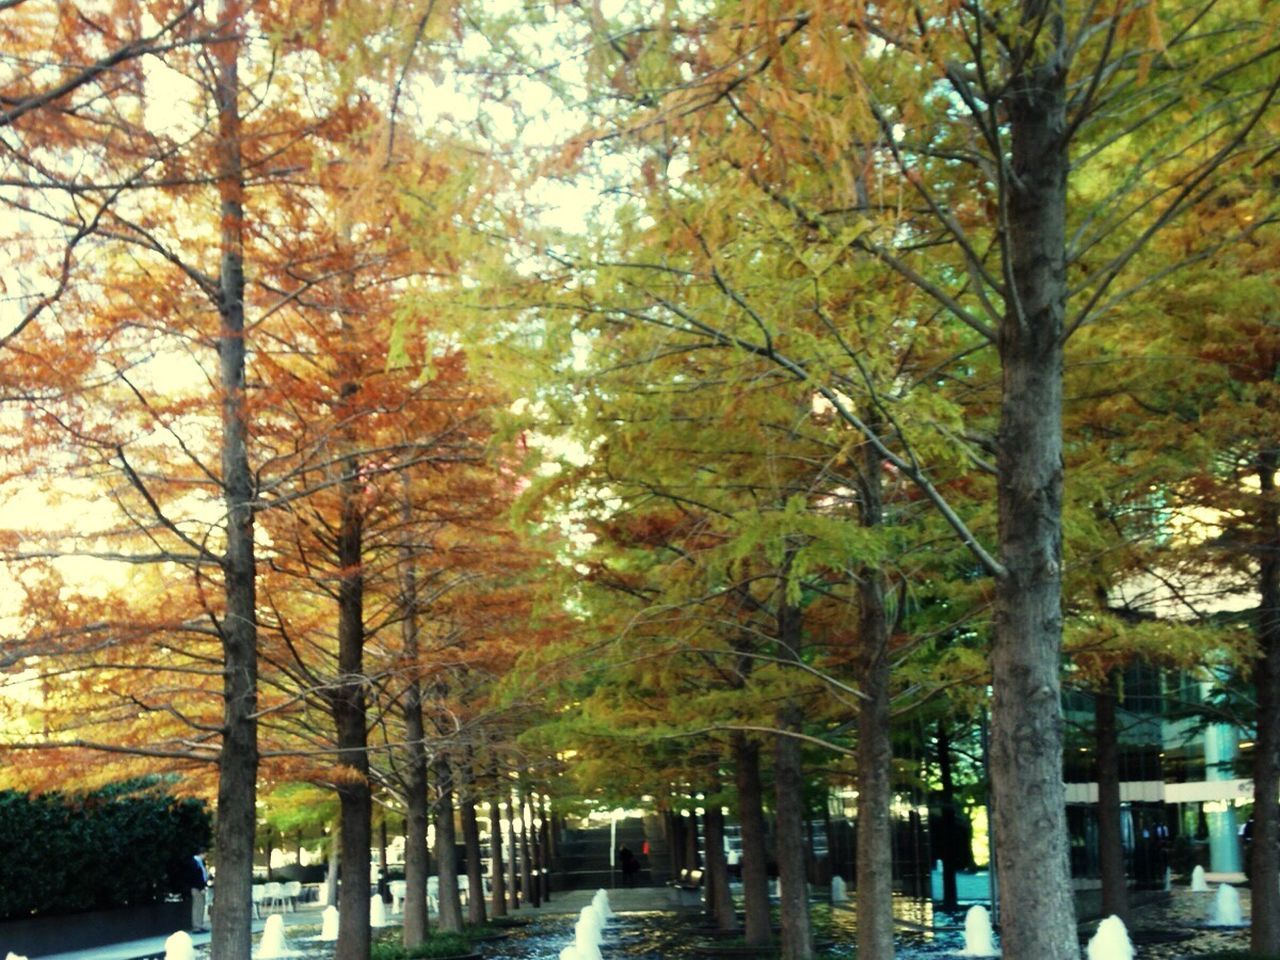 autumn, tree, nature, change, branch, beauty in nature, outdoors, no people, day